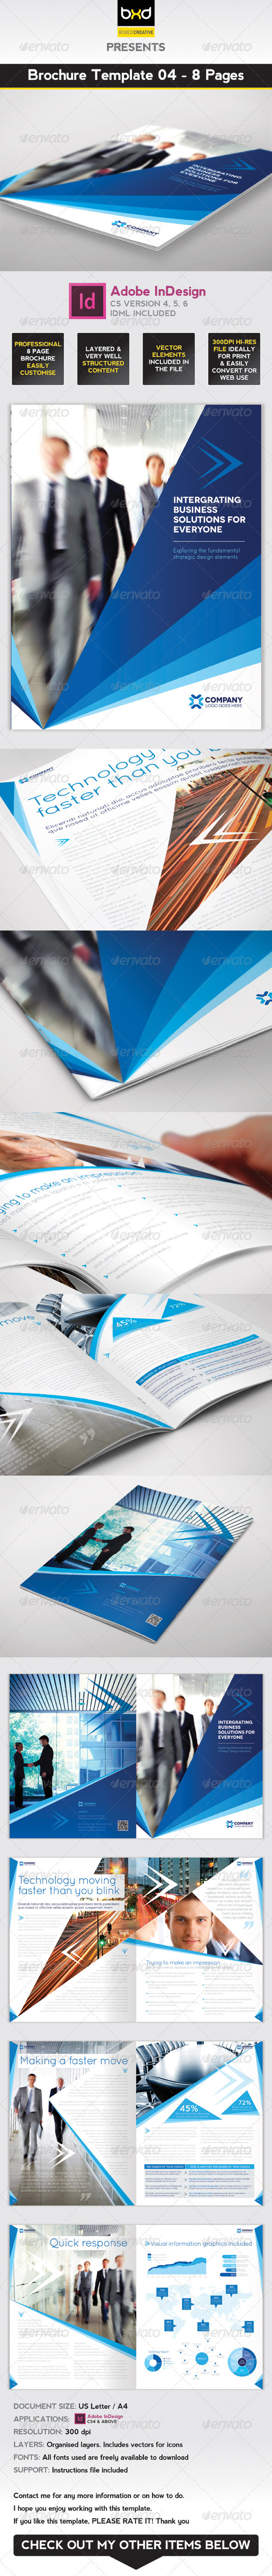 GraphicRiver Brochure Template InDesign 8 Page Layout 04 3683301